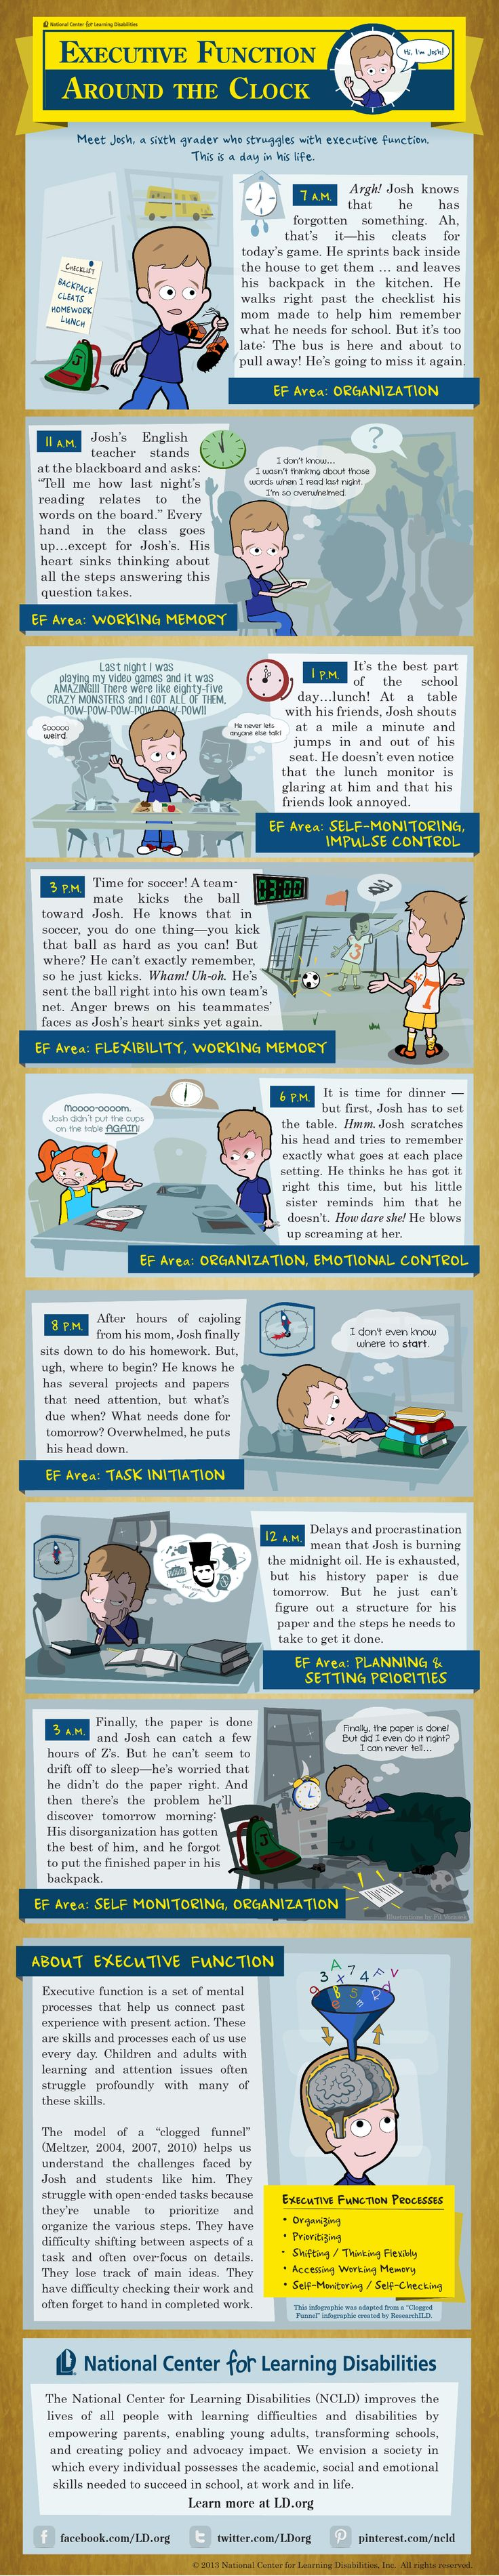 executive functioning infographic www.edgefoundation.org